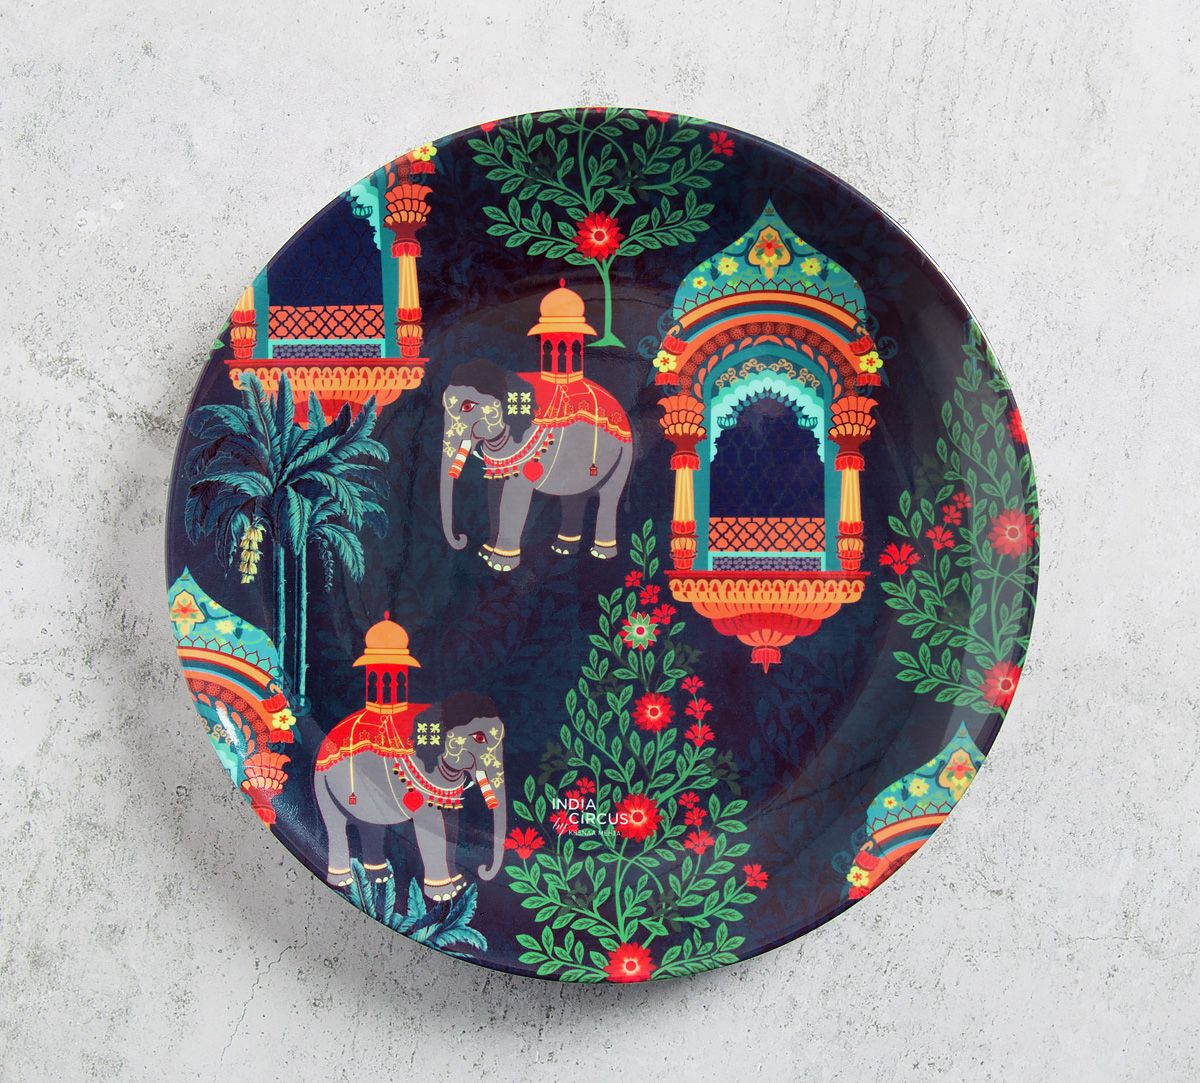 Sovereign Cavaliers 8 inch Decorative and Snacks Platter